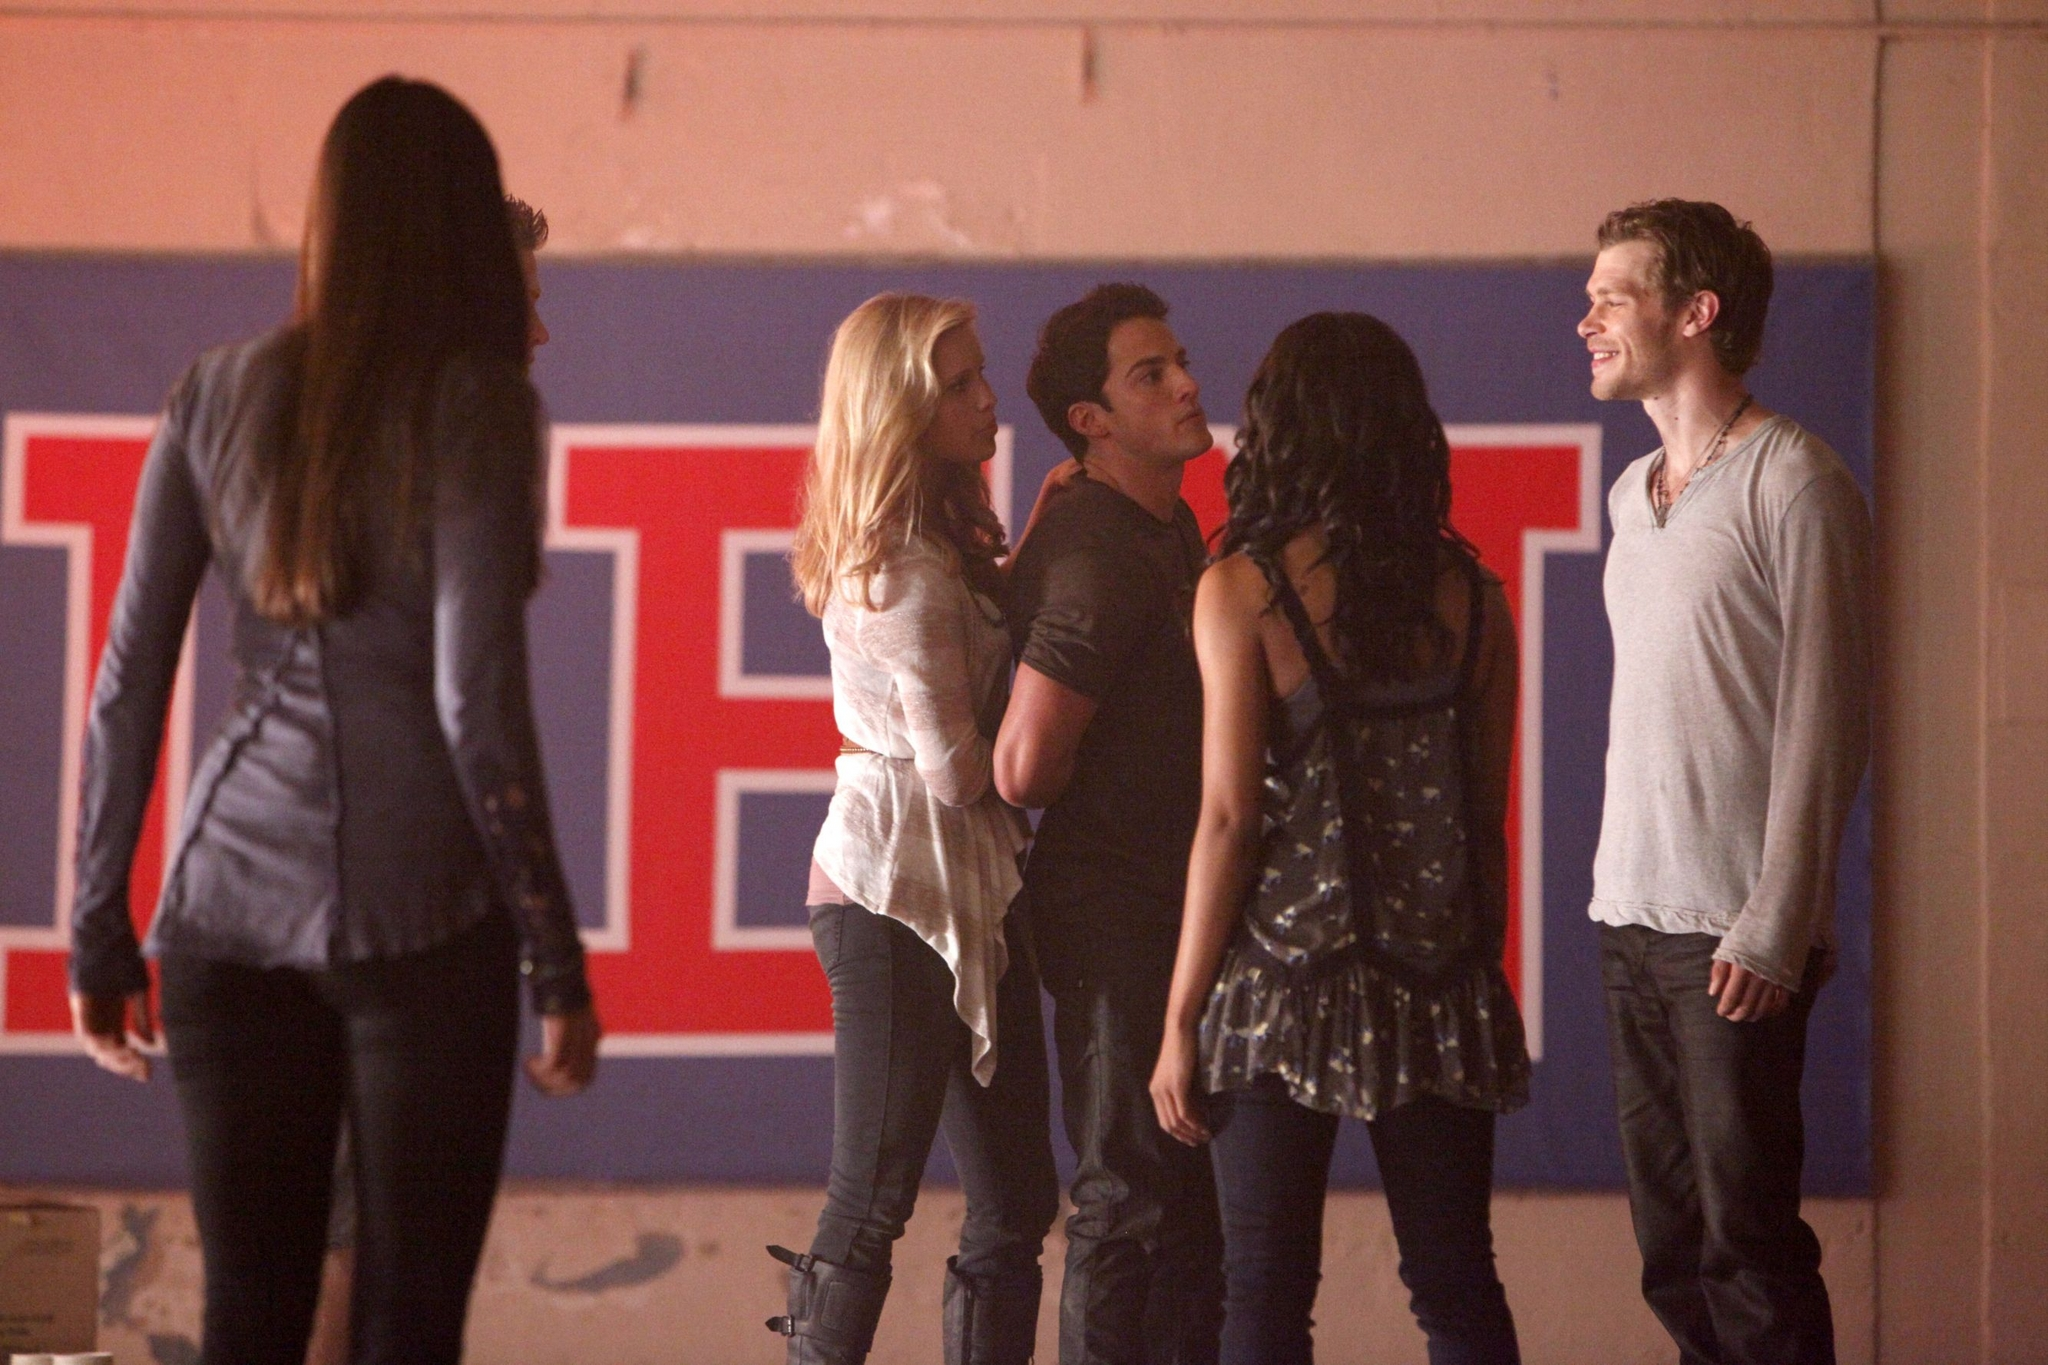 vampire-diaries-3x05-the-reckoning-claire-holt-27335672-2048-1365.jpg